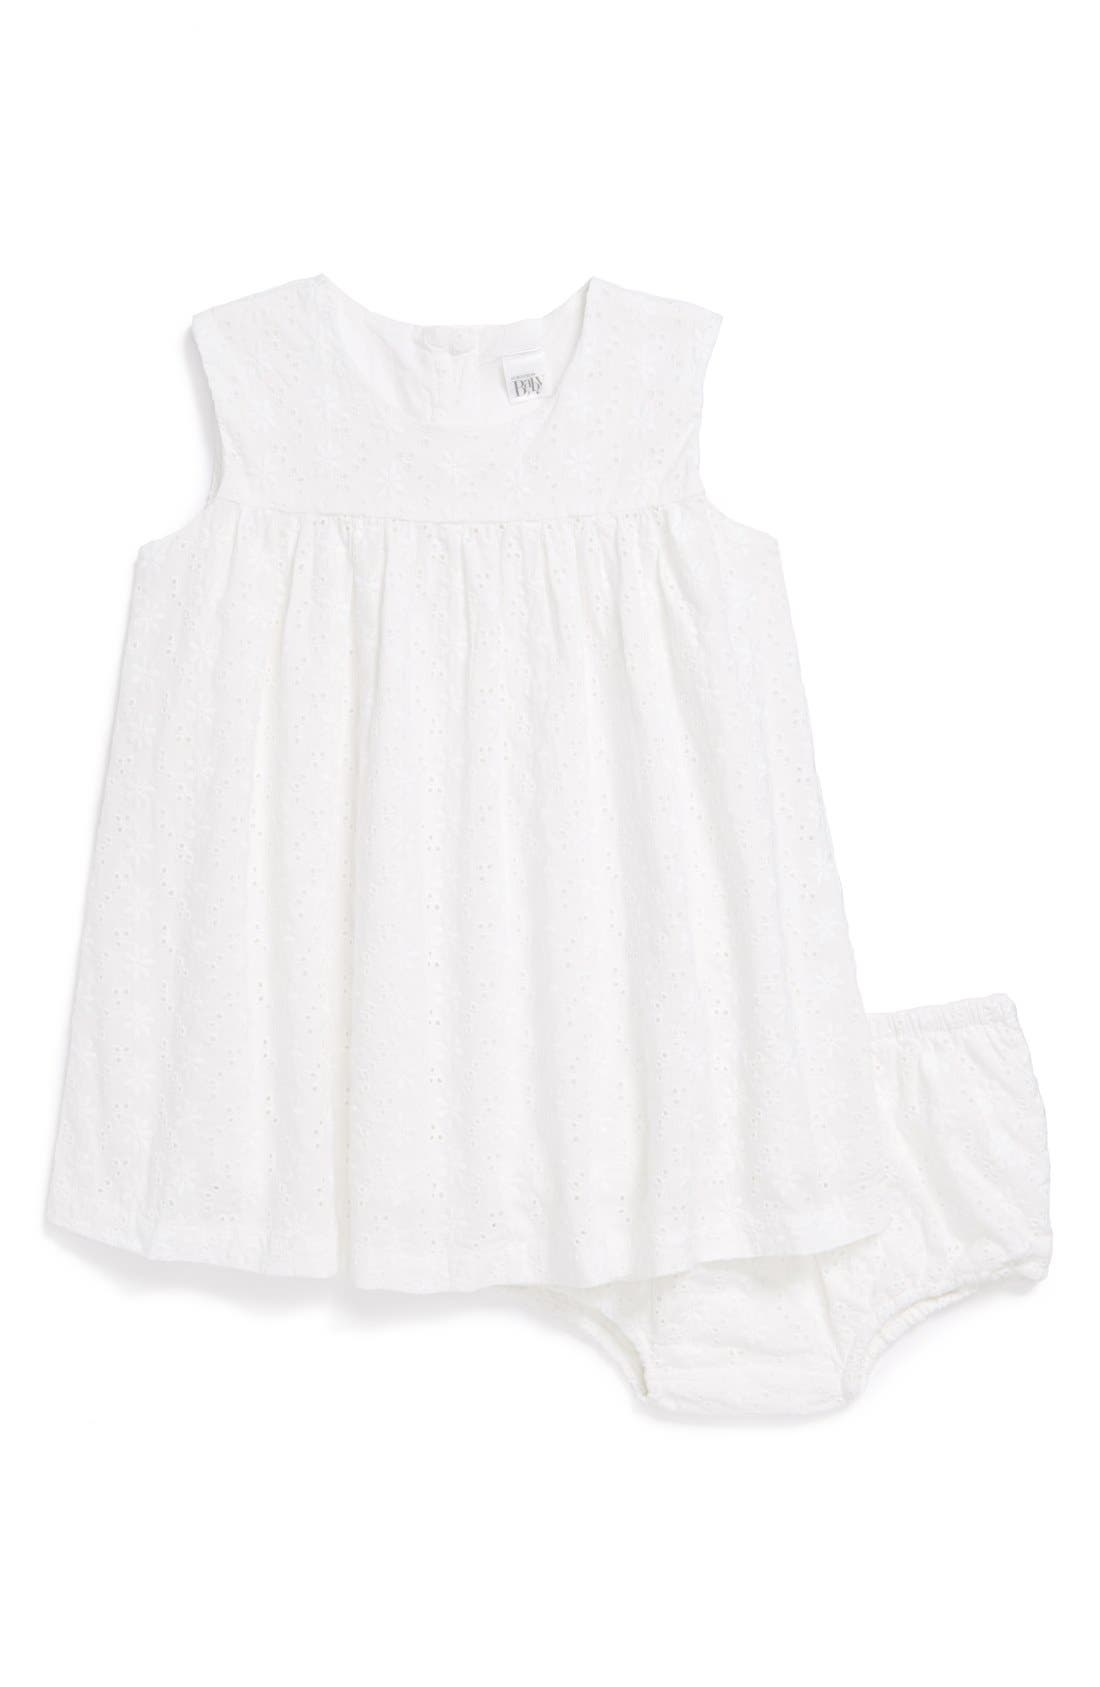 NORDSTROM BABY Eyelet Dress & Bloomers, Main, color, 100